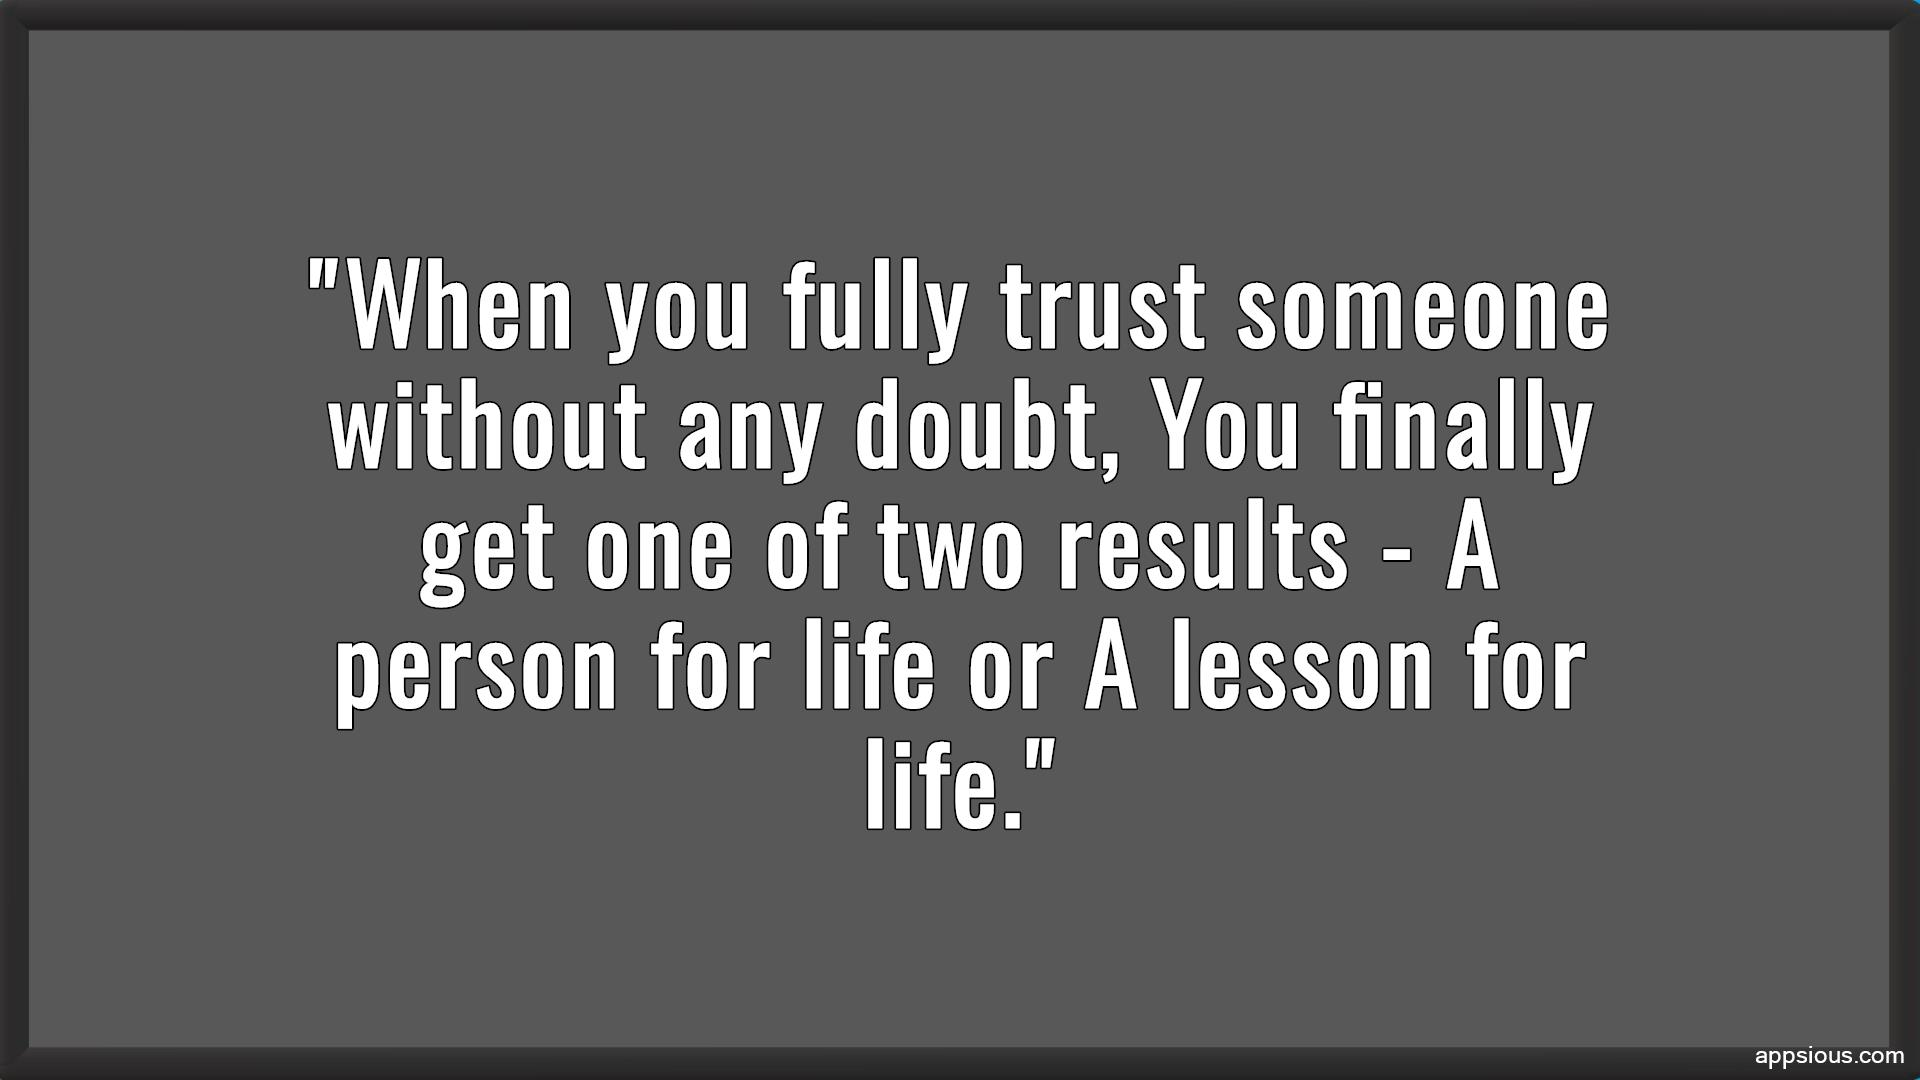 When you fully trust someone without any doubt, You finally get one of two results - A person for life or A lesson for life.